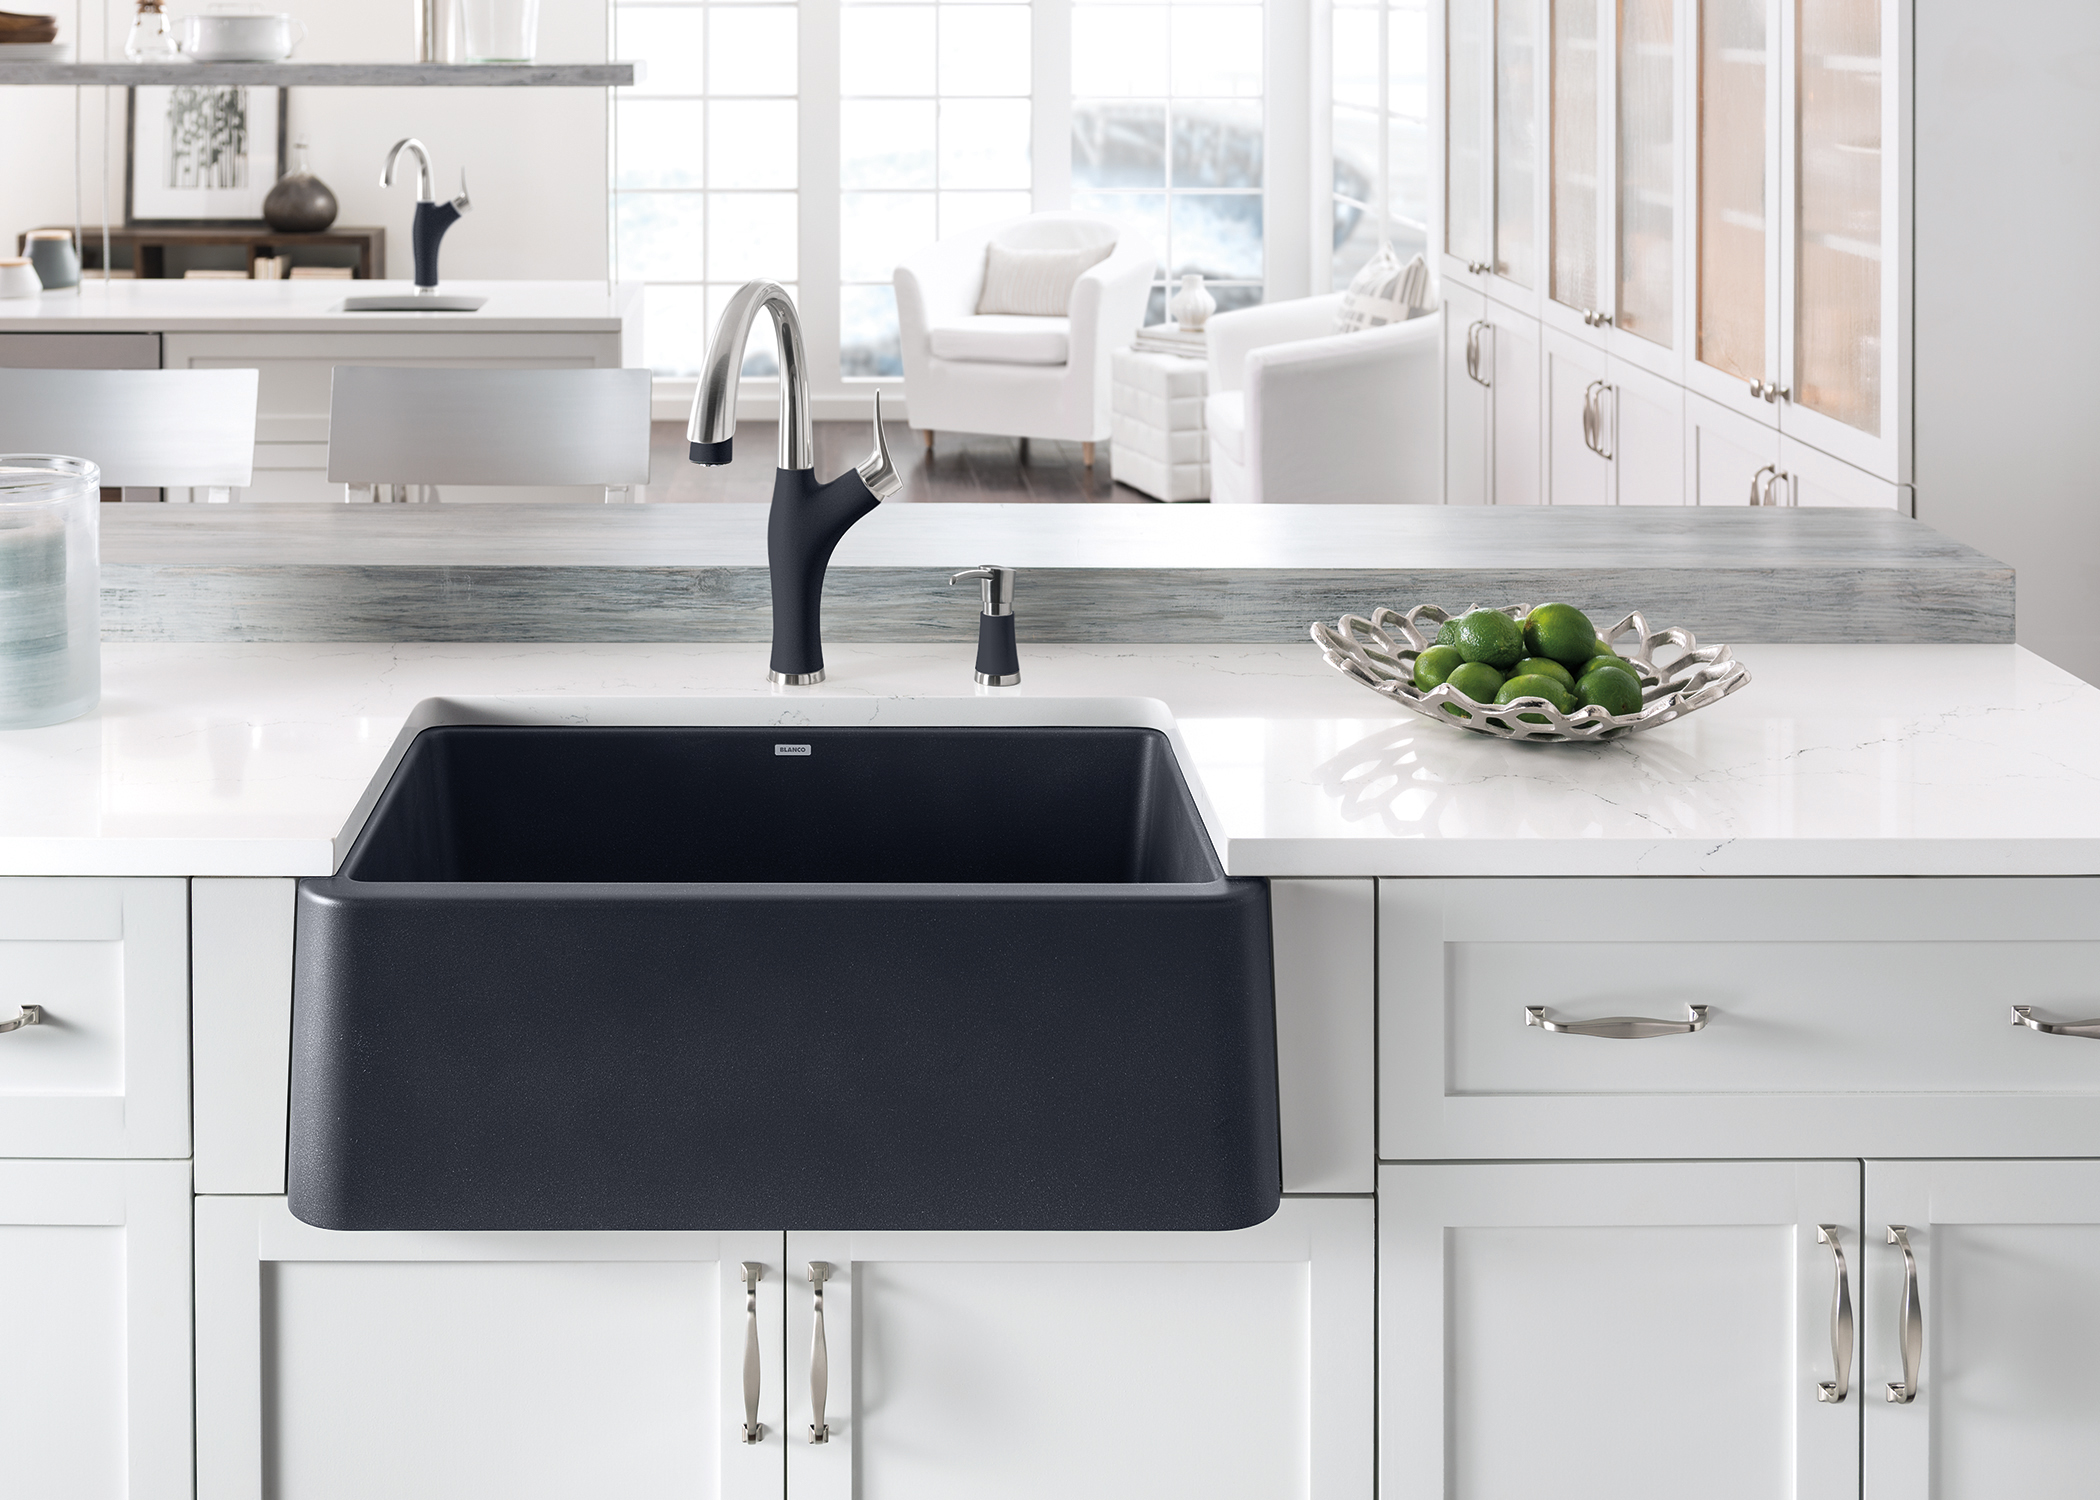 Exceptional IKON Apron Front Sink